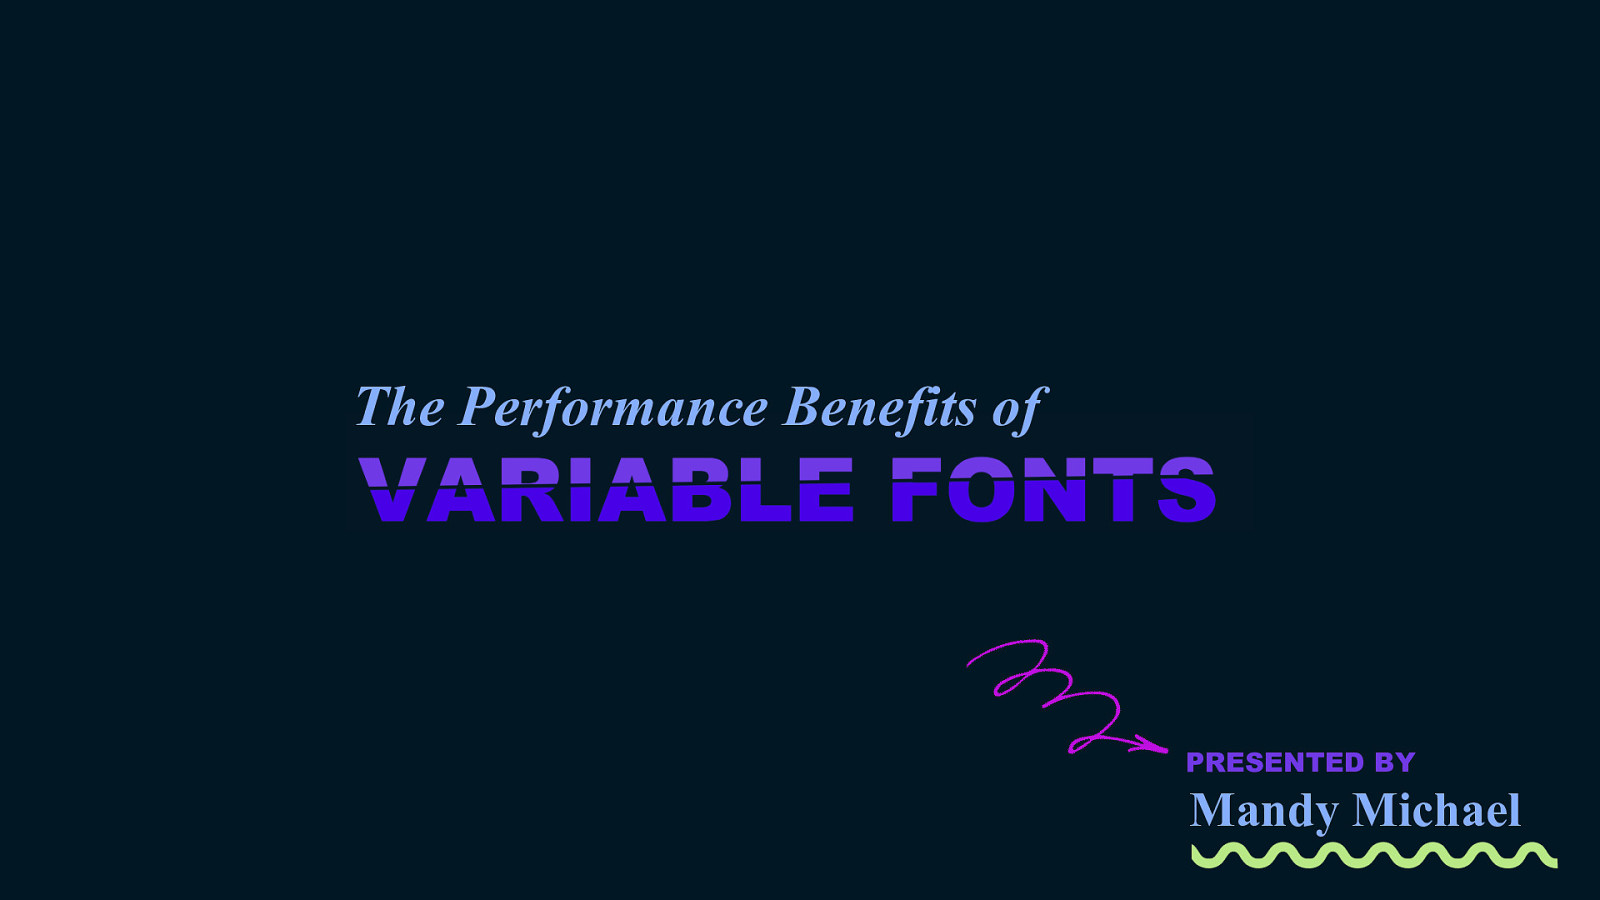 Performance Benefits of Variable Fonts